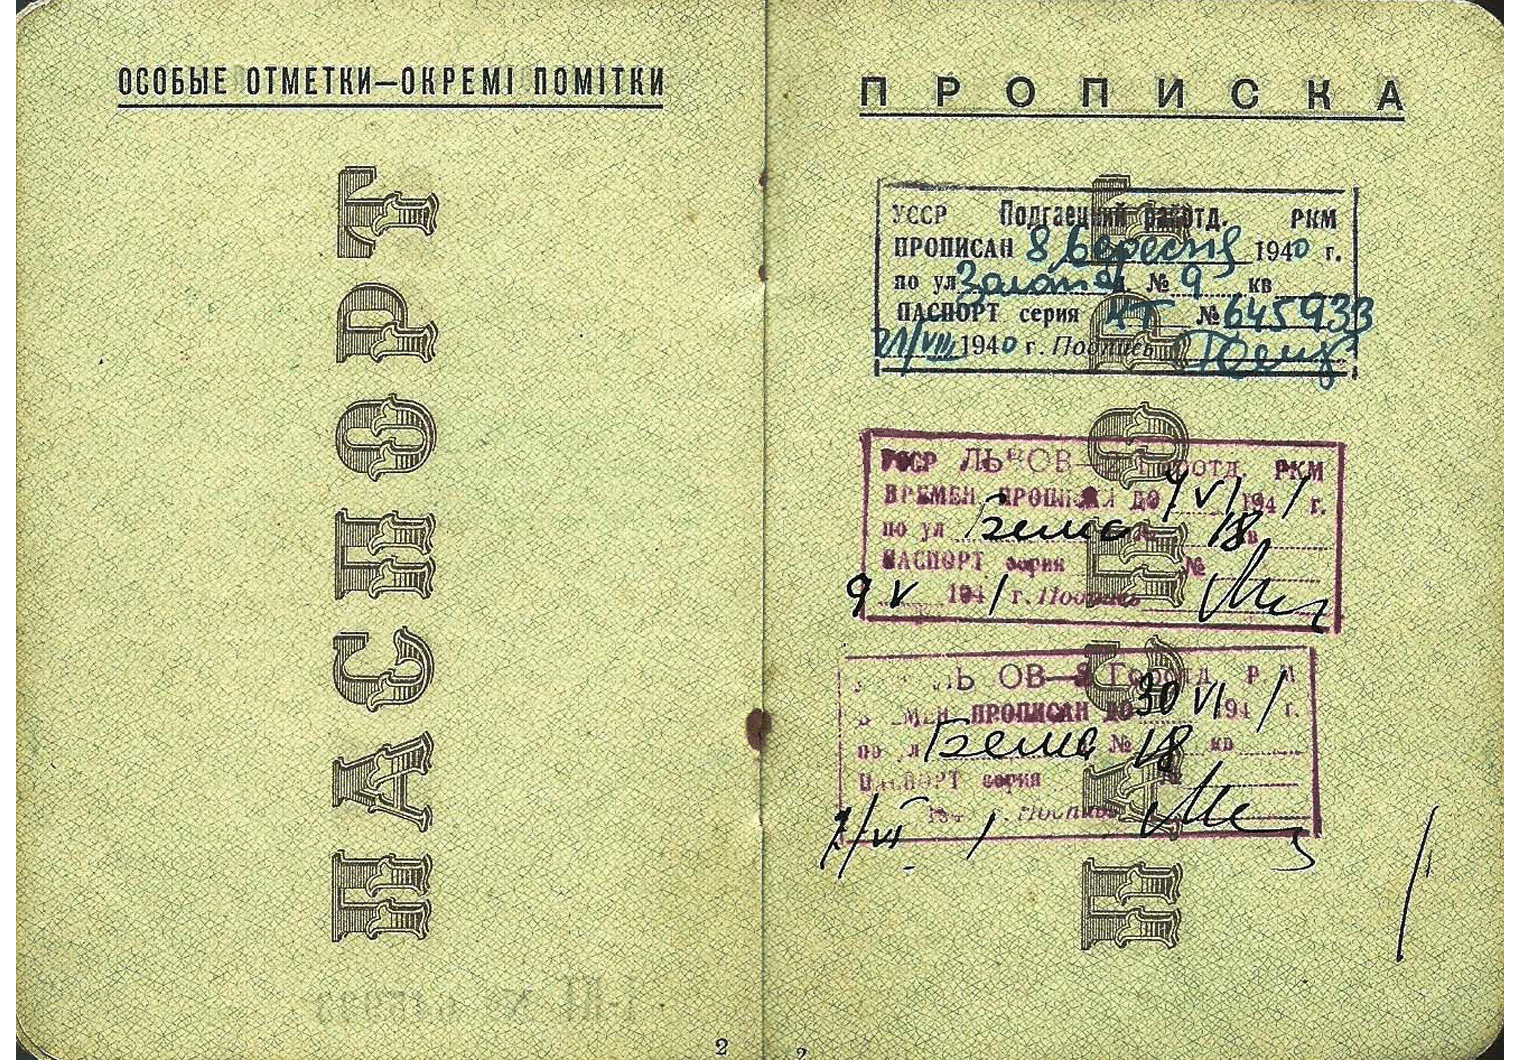 WW2 Soviet occupation passport